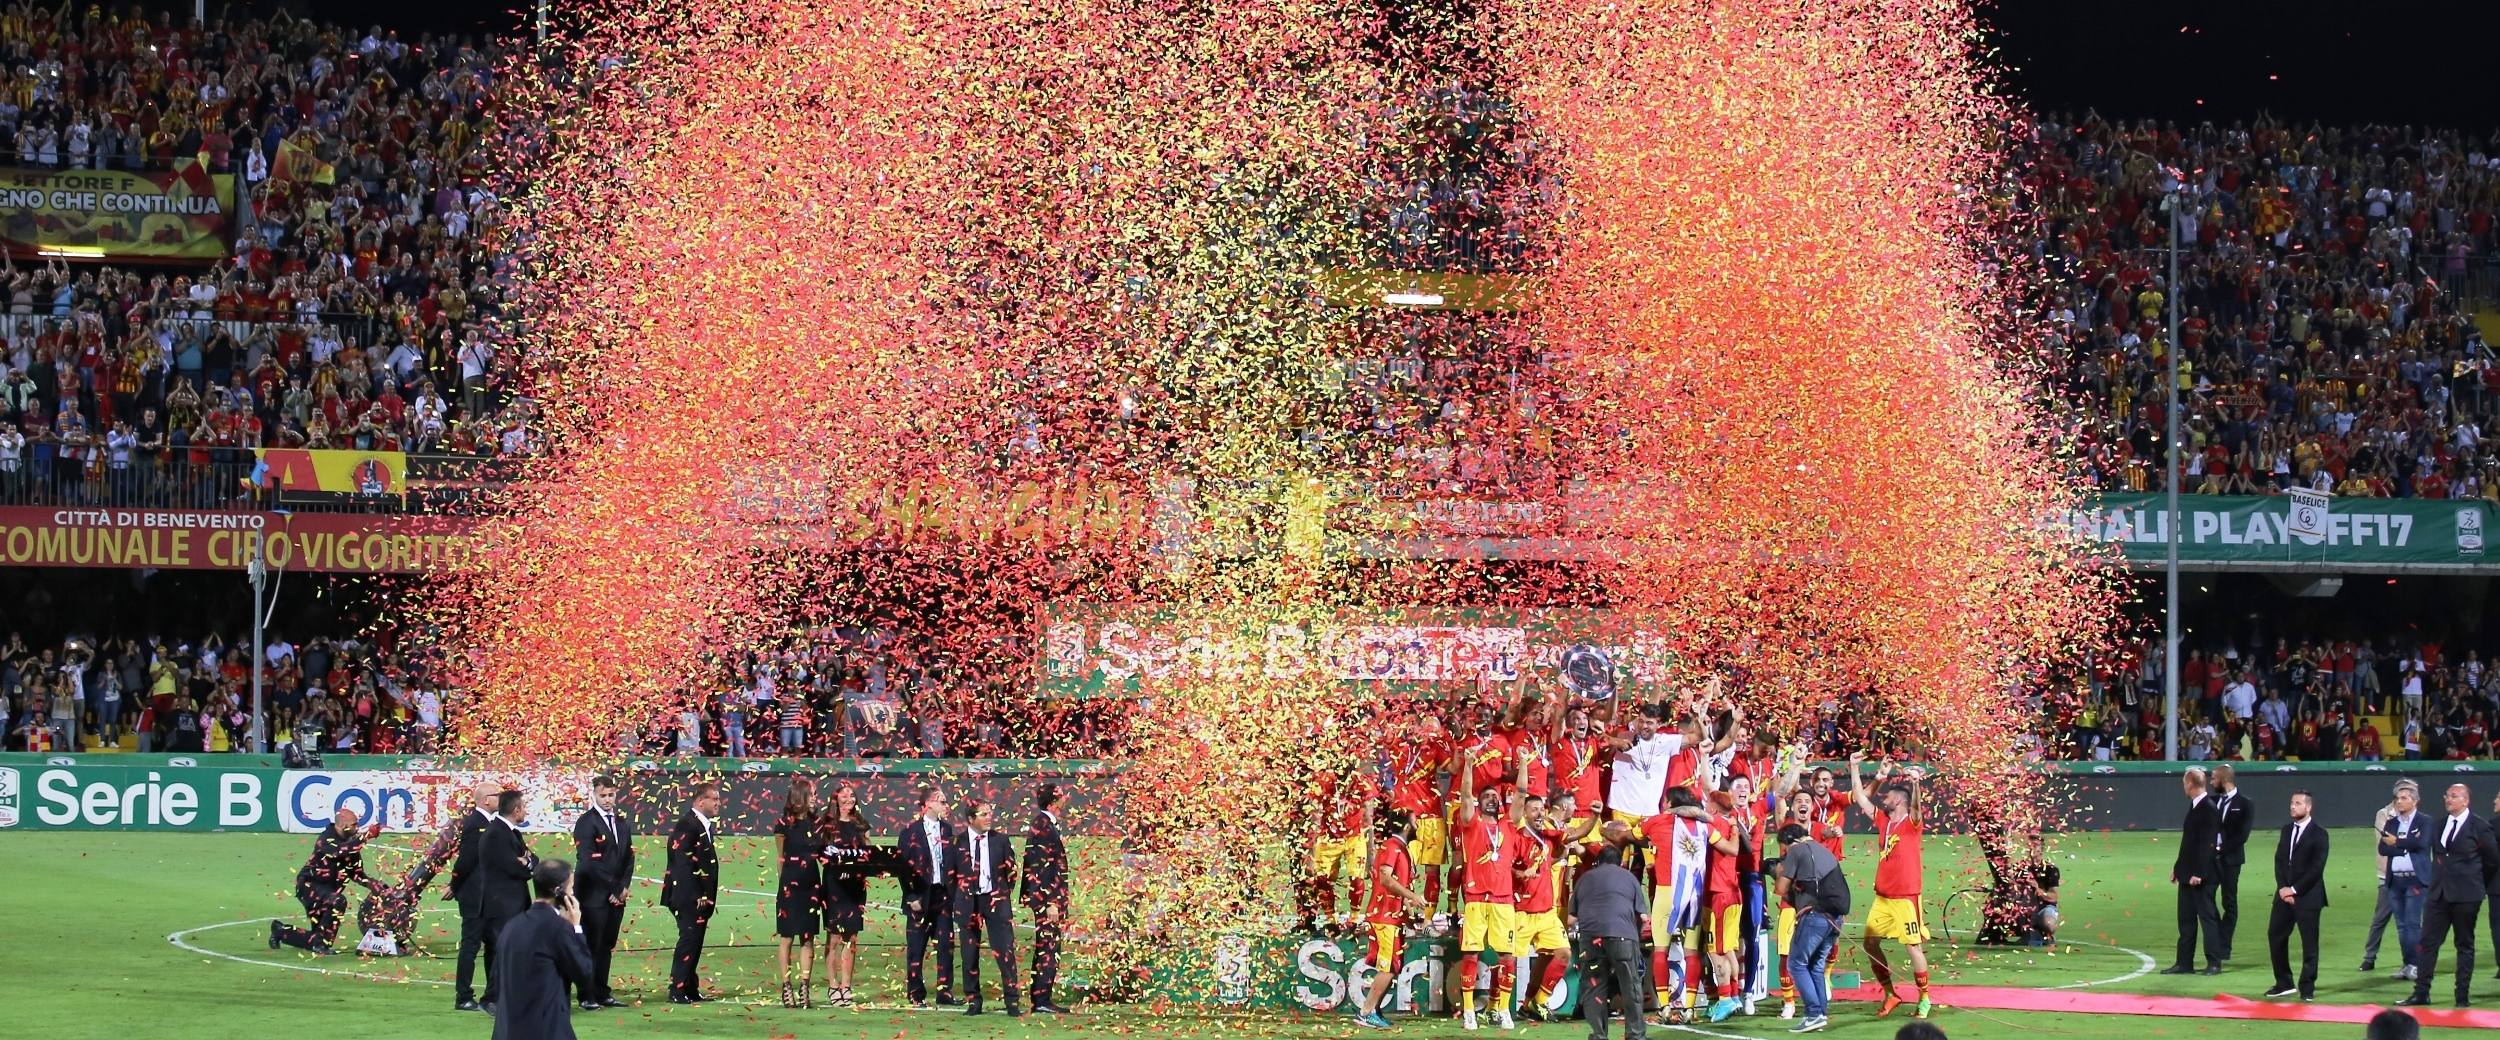 Serie B, finale play-off: BENEVENTO IN SERIE A